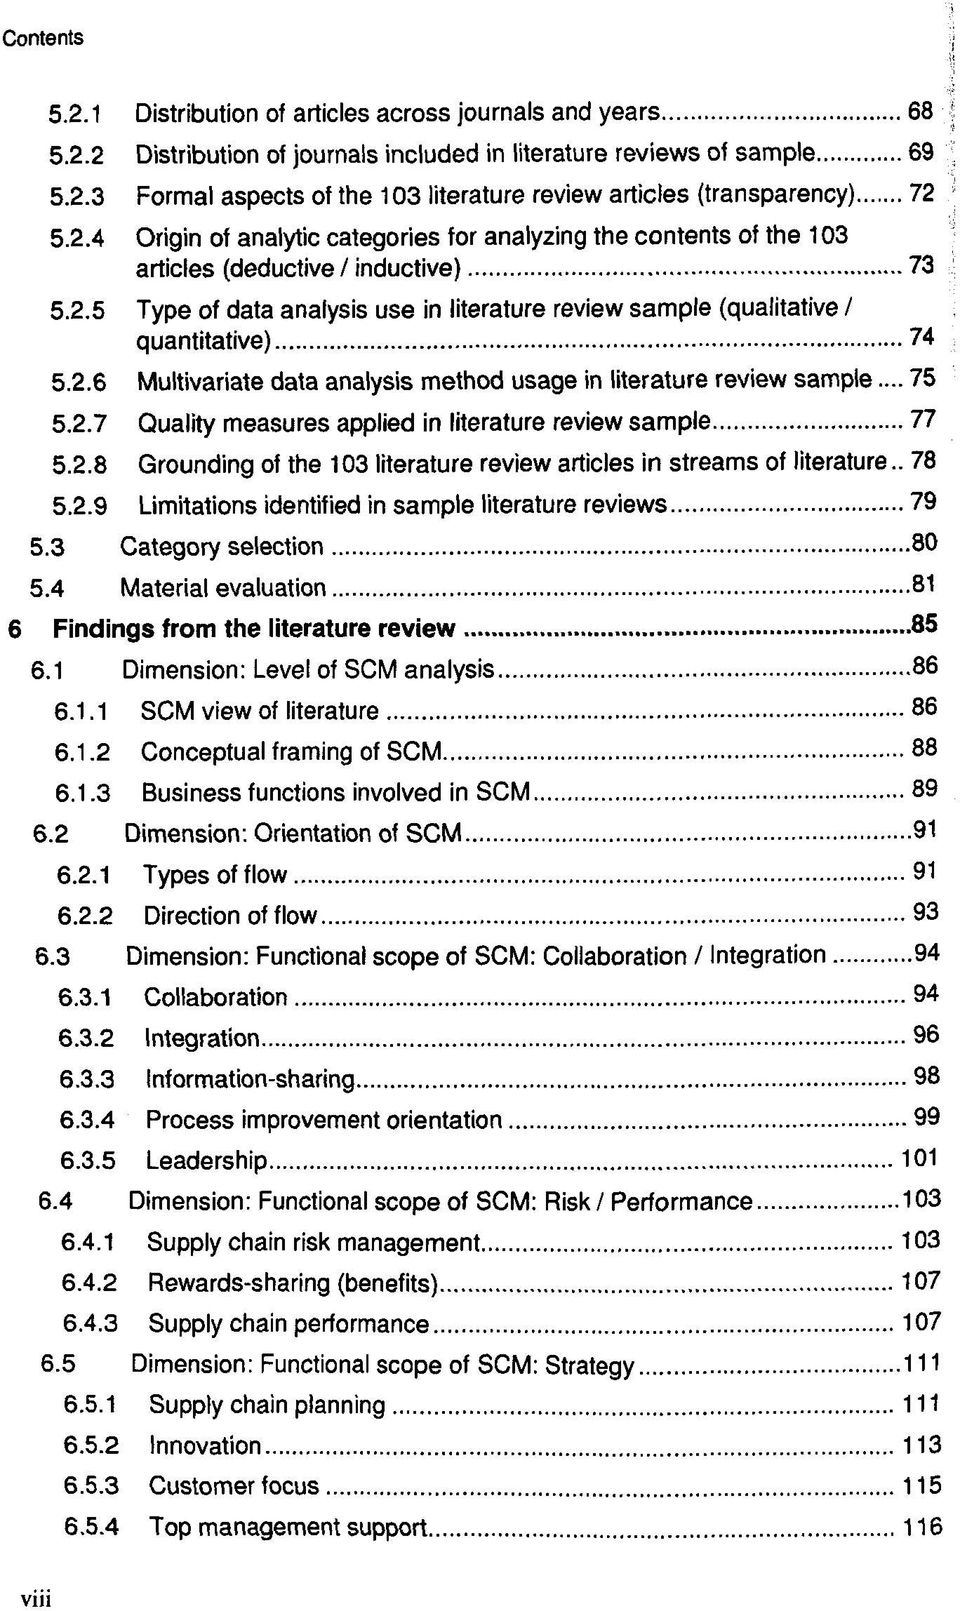 2.6 Multivariate data analysis method usage in literature review sample... 75 5.2.7 Quality measures applied in literature review sample 77 5.2.8 Grounding of the 103 literature review articles in streams of literature.